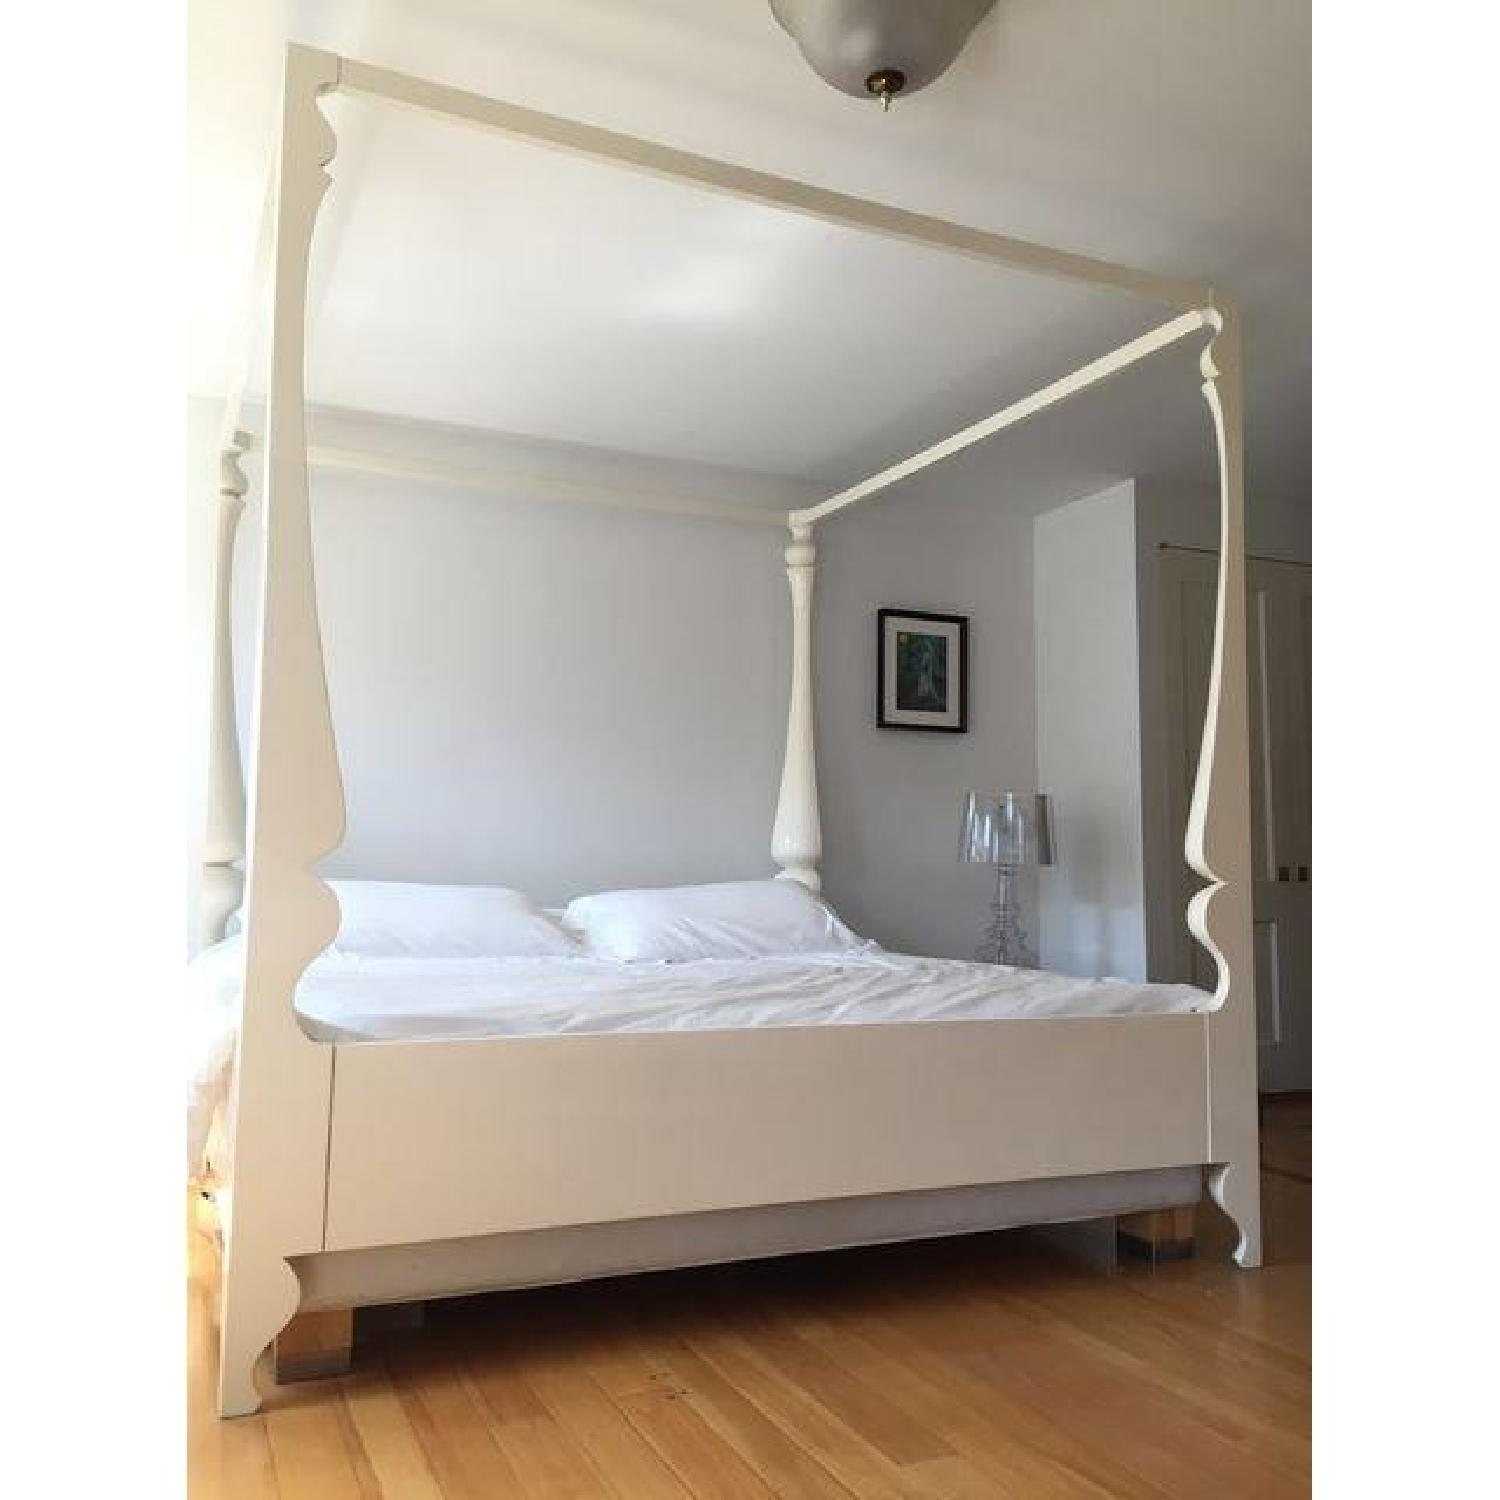 ABC Carpet and Home Louis Four Poster King Bed - image-8